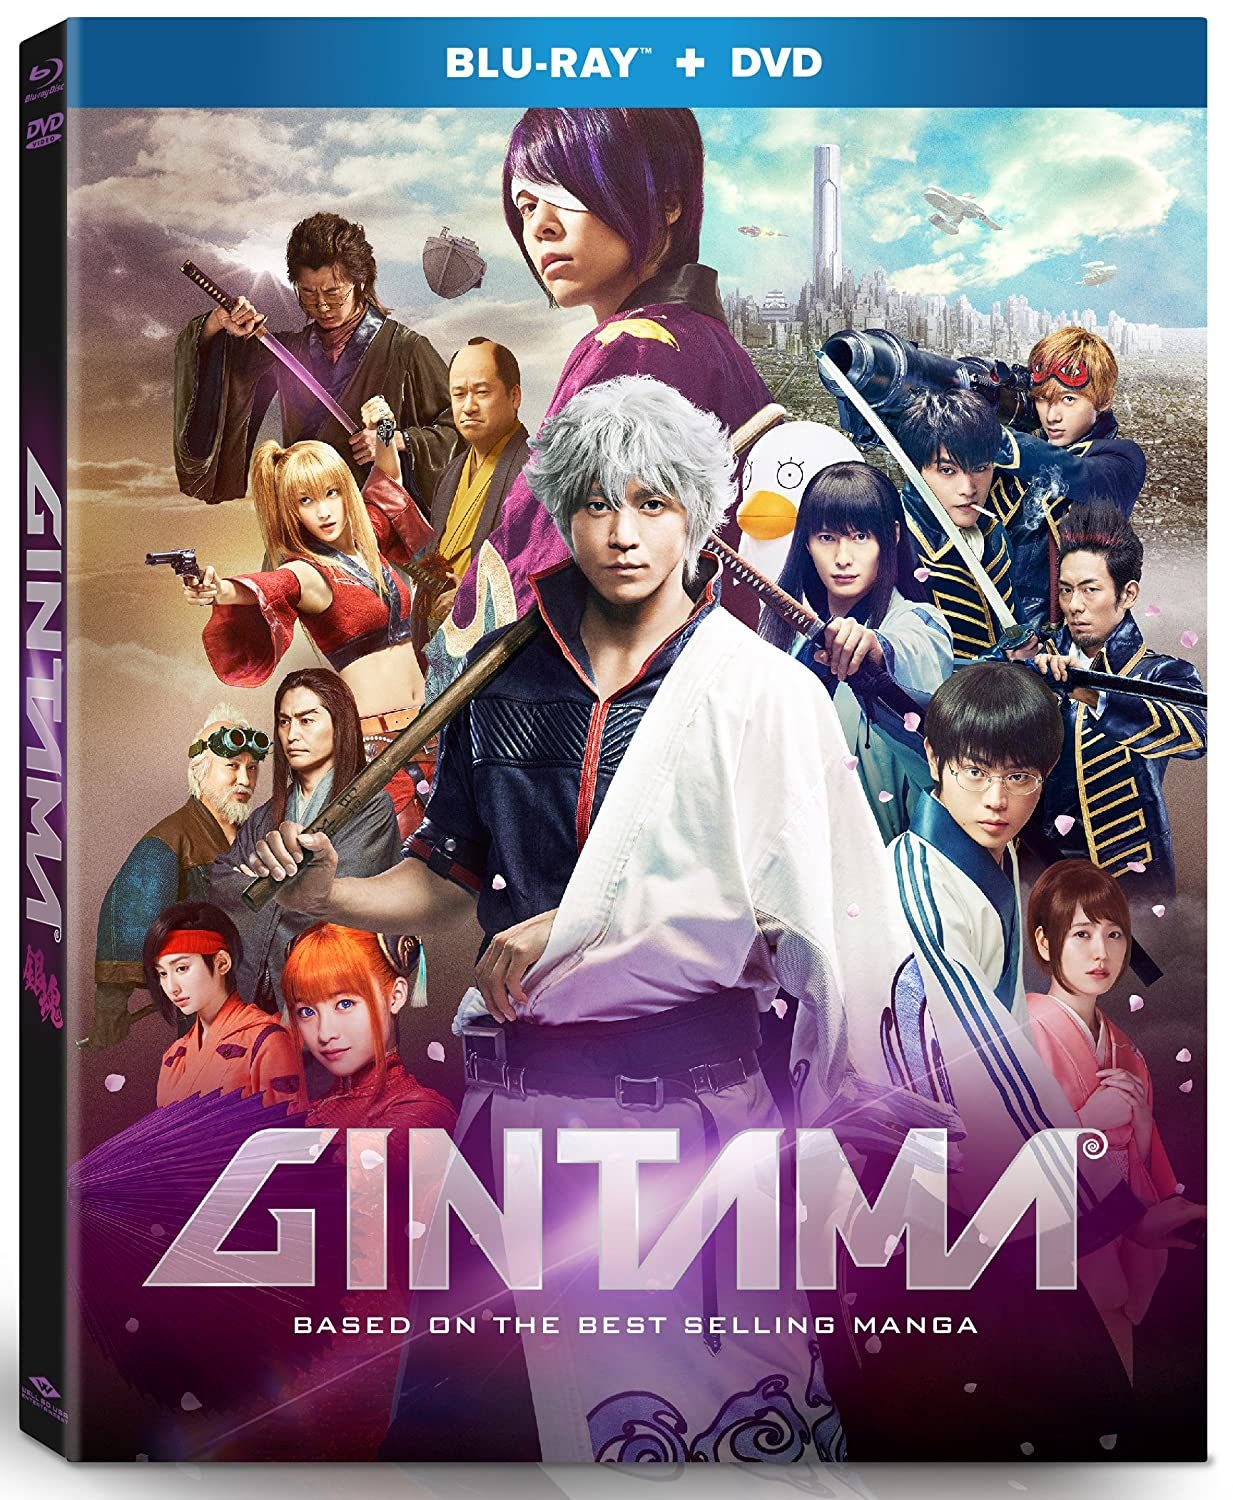 Gintama: Live Action Movie Blu-ray/DVD (Sub Only)